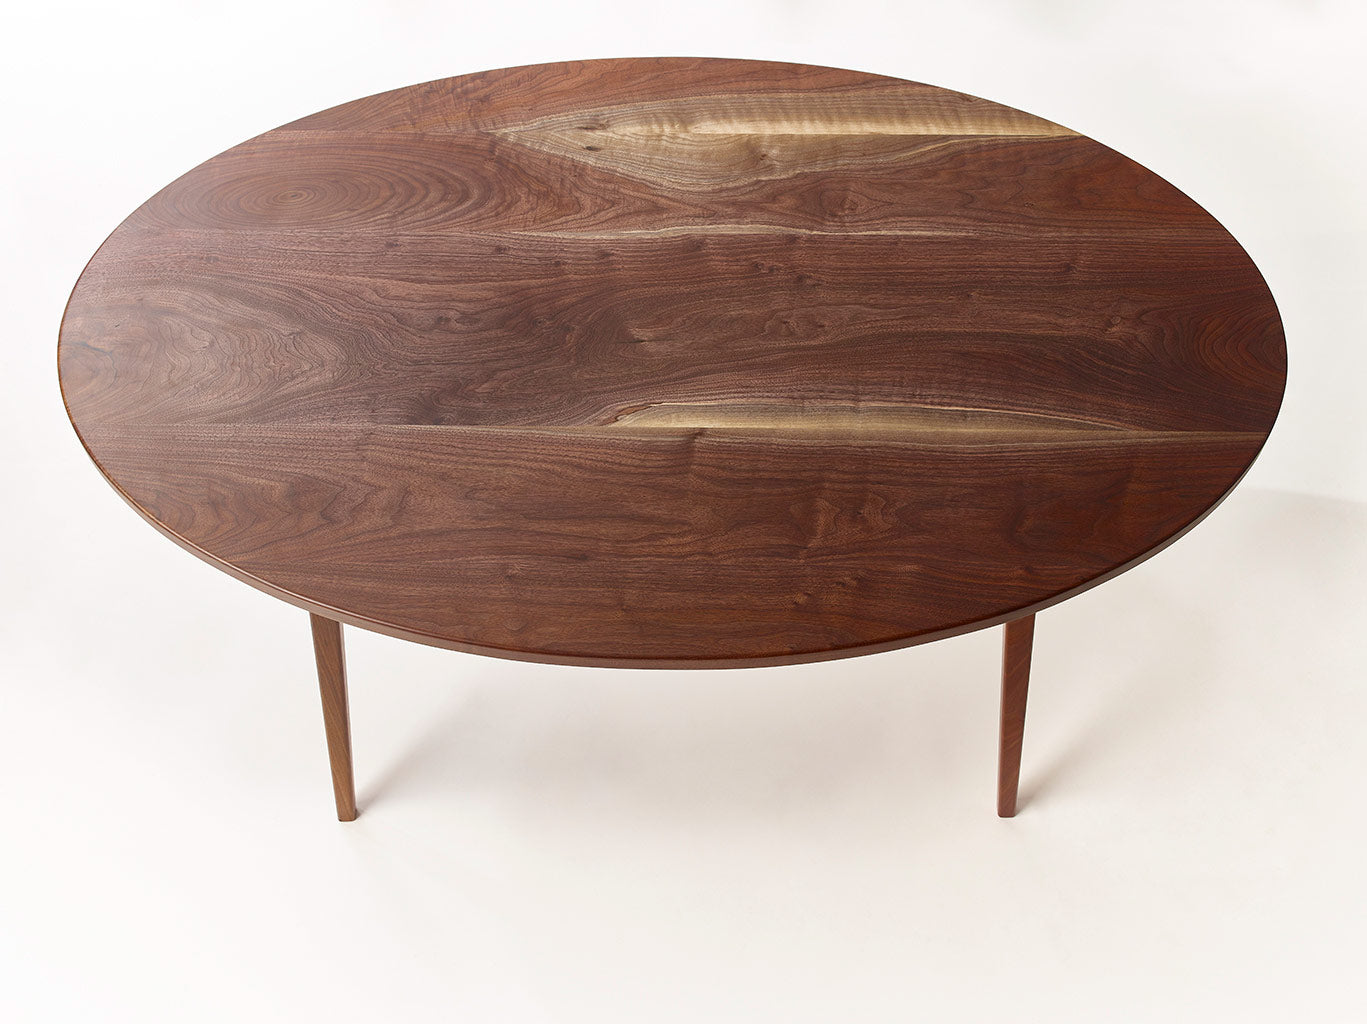 Mid-Century Danish Minimalist Modern Dining Table with Oval or Rectangular Top. Handmade from Solid Wood and Powder Coated / Painted, Chrome, Copper or Brass Plated Steel by Wake the Tree Furniture Co.